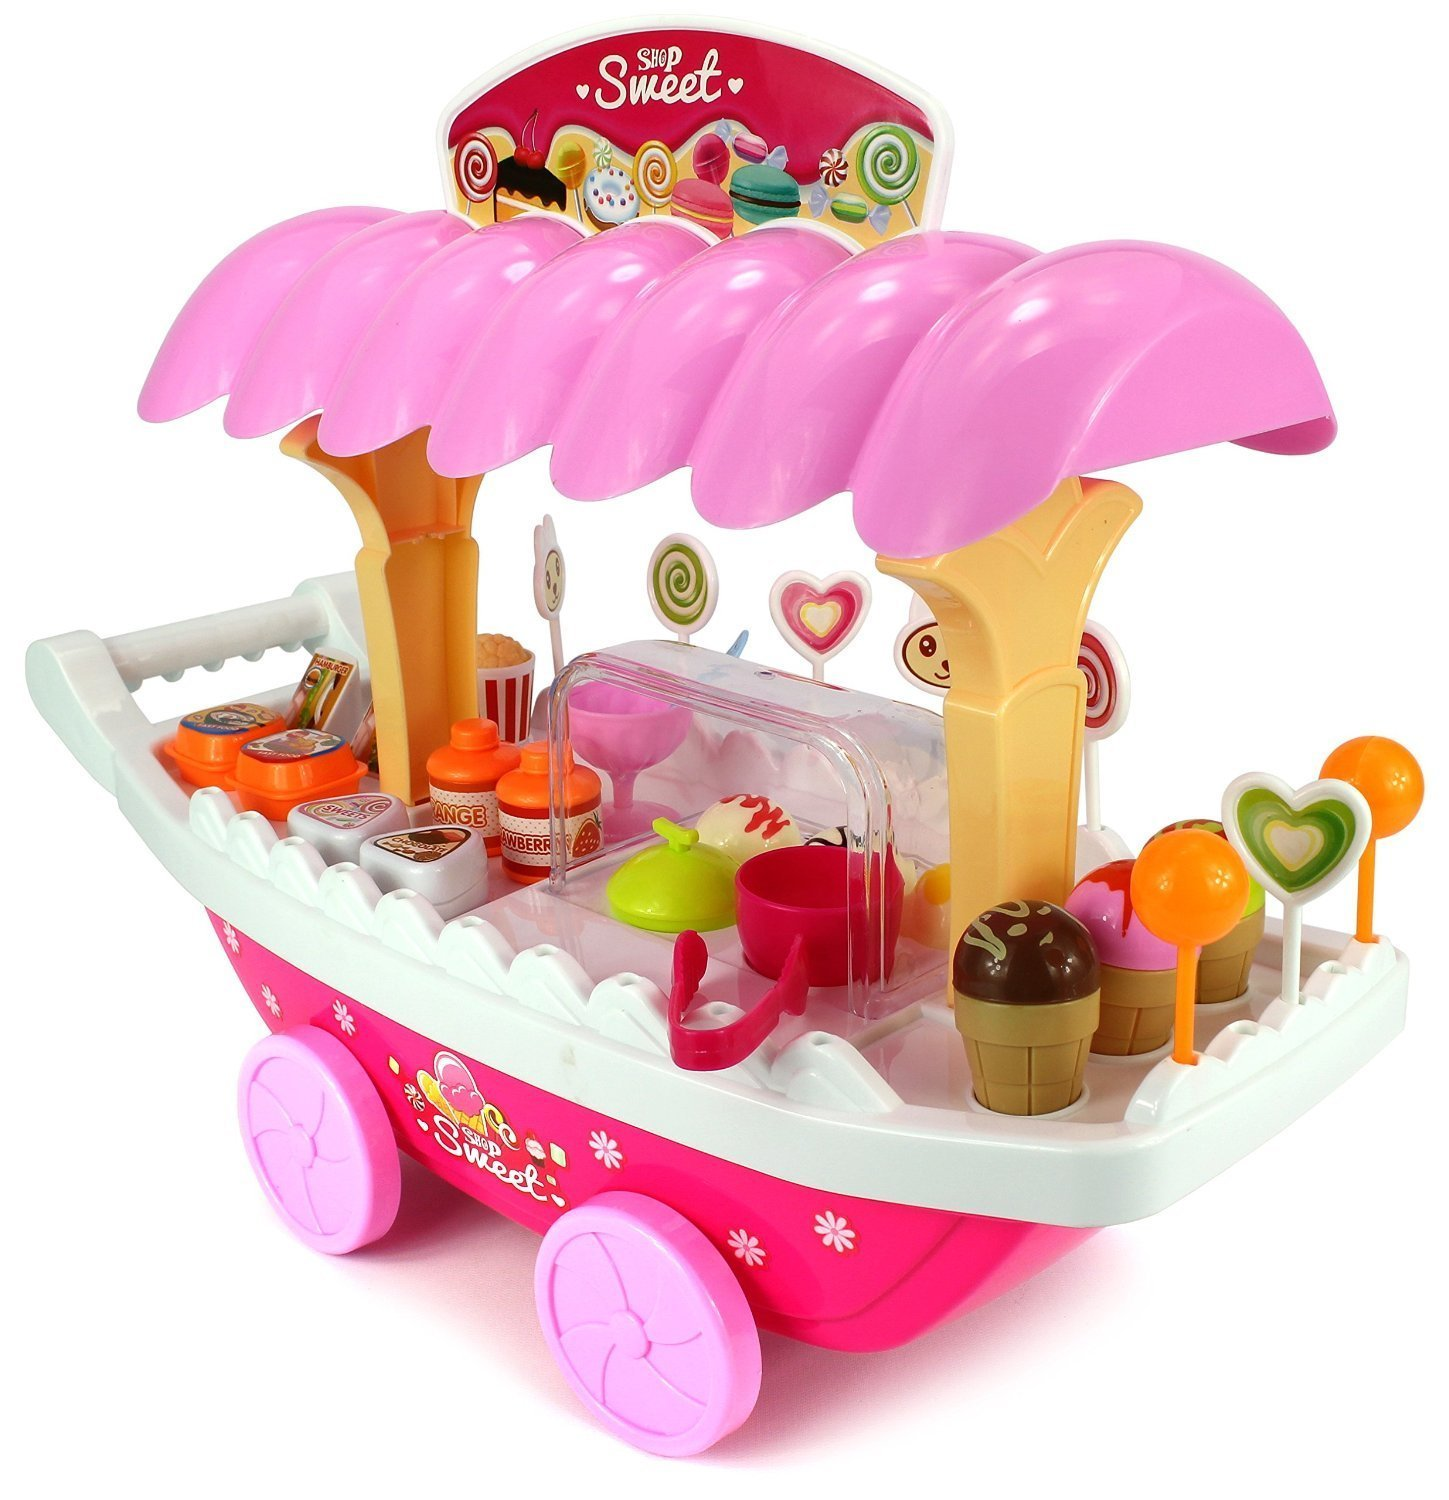 sunshine ice cream kitchen play cart kitchen set toy with lights and